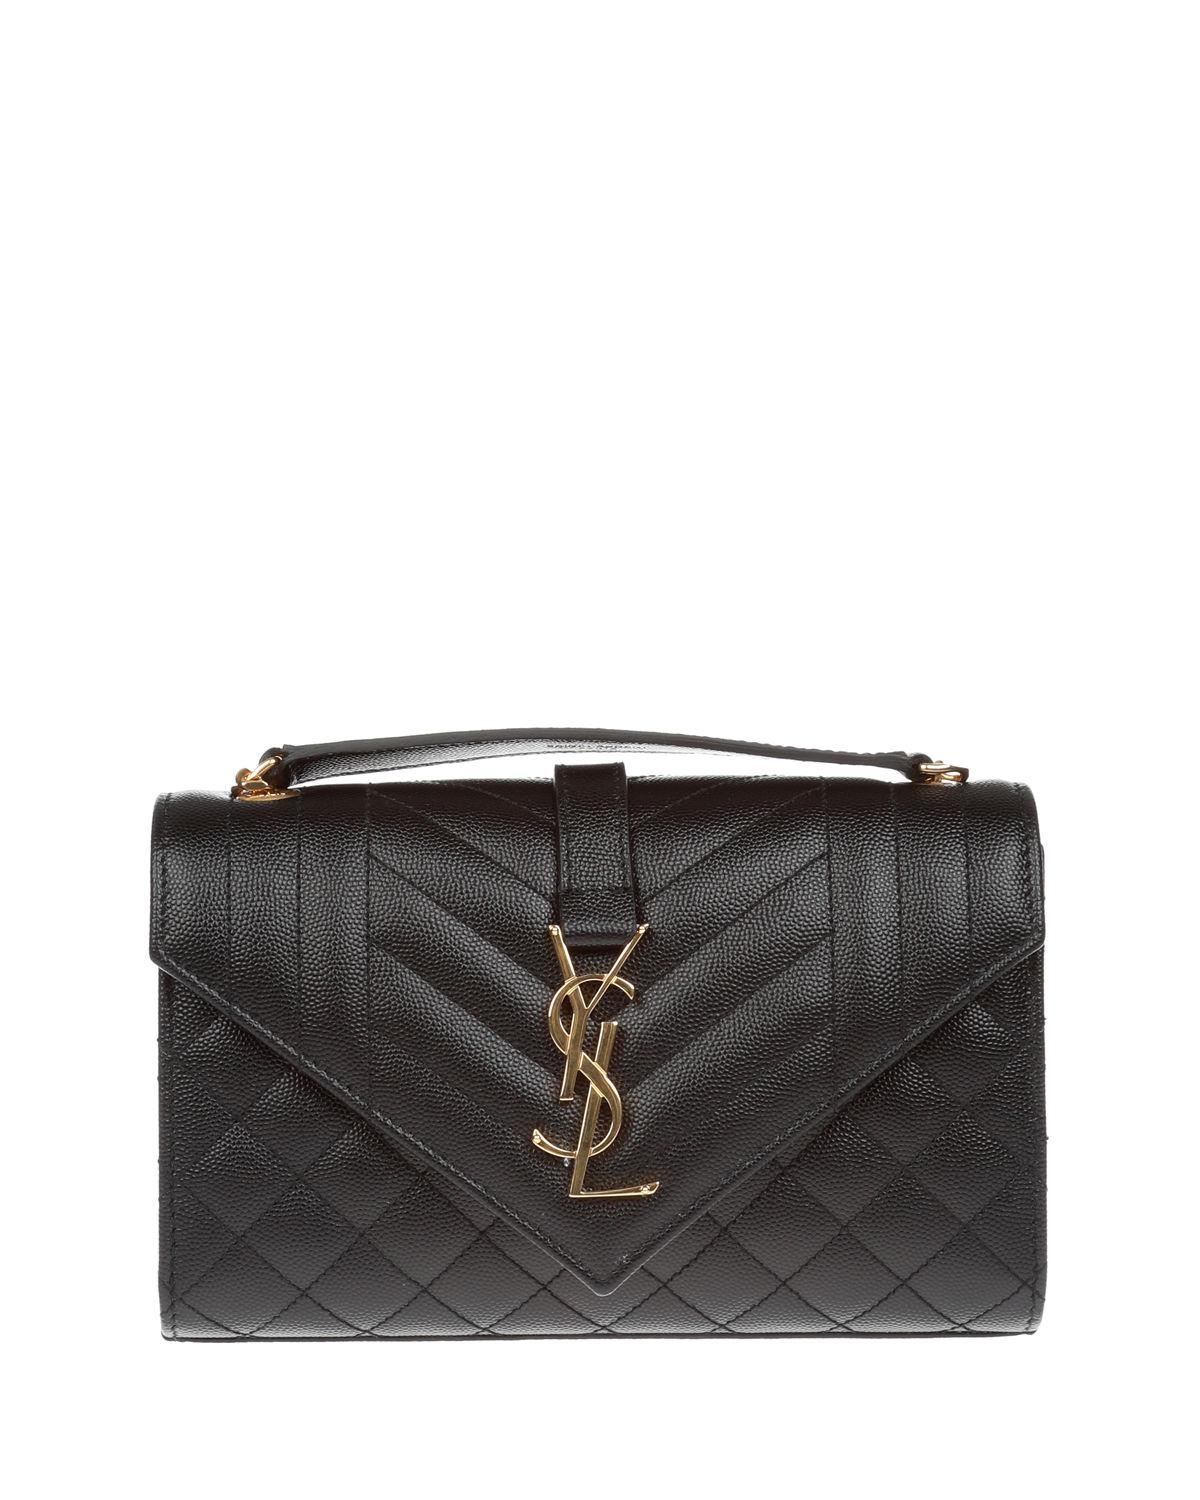 Saint Laurent. Women s Black Monogram Ysl Envelope Small Chain Shoulder Bag  ... 026a88a1b8